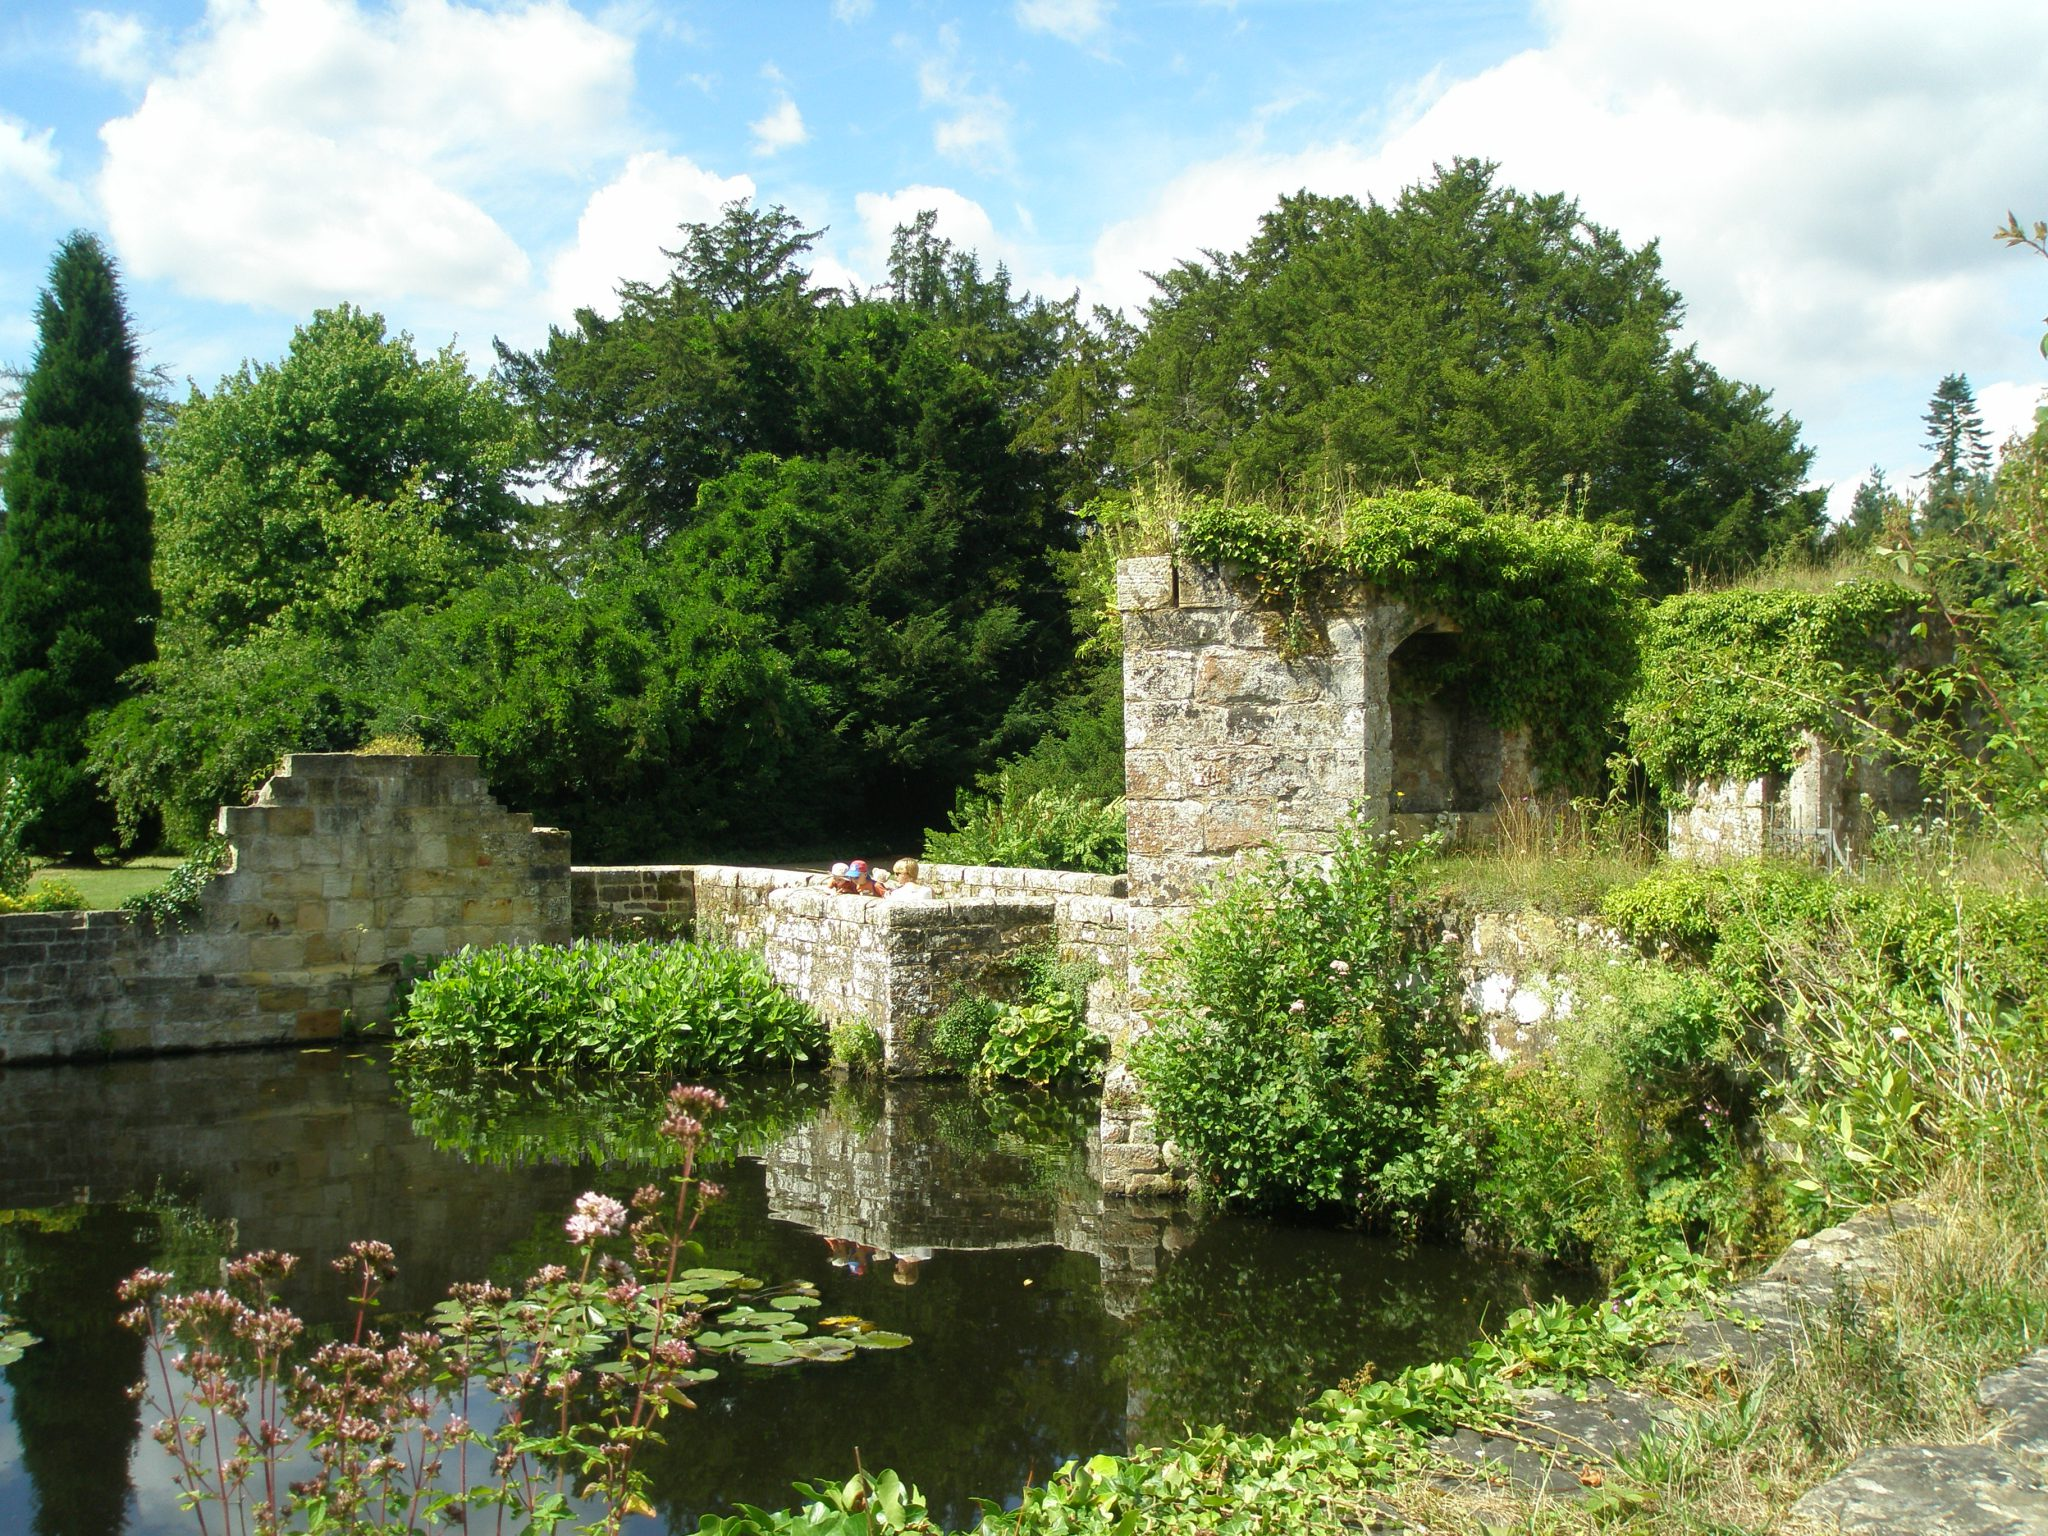 We prepared to leave the Old Castle Gardens, via the bridge across the Moat